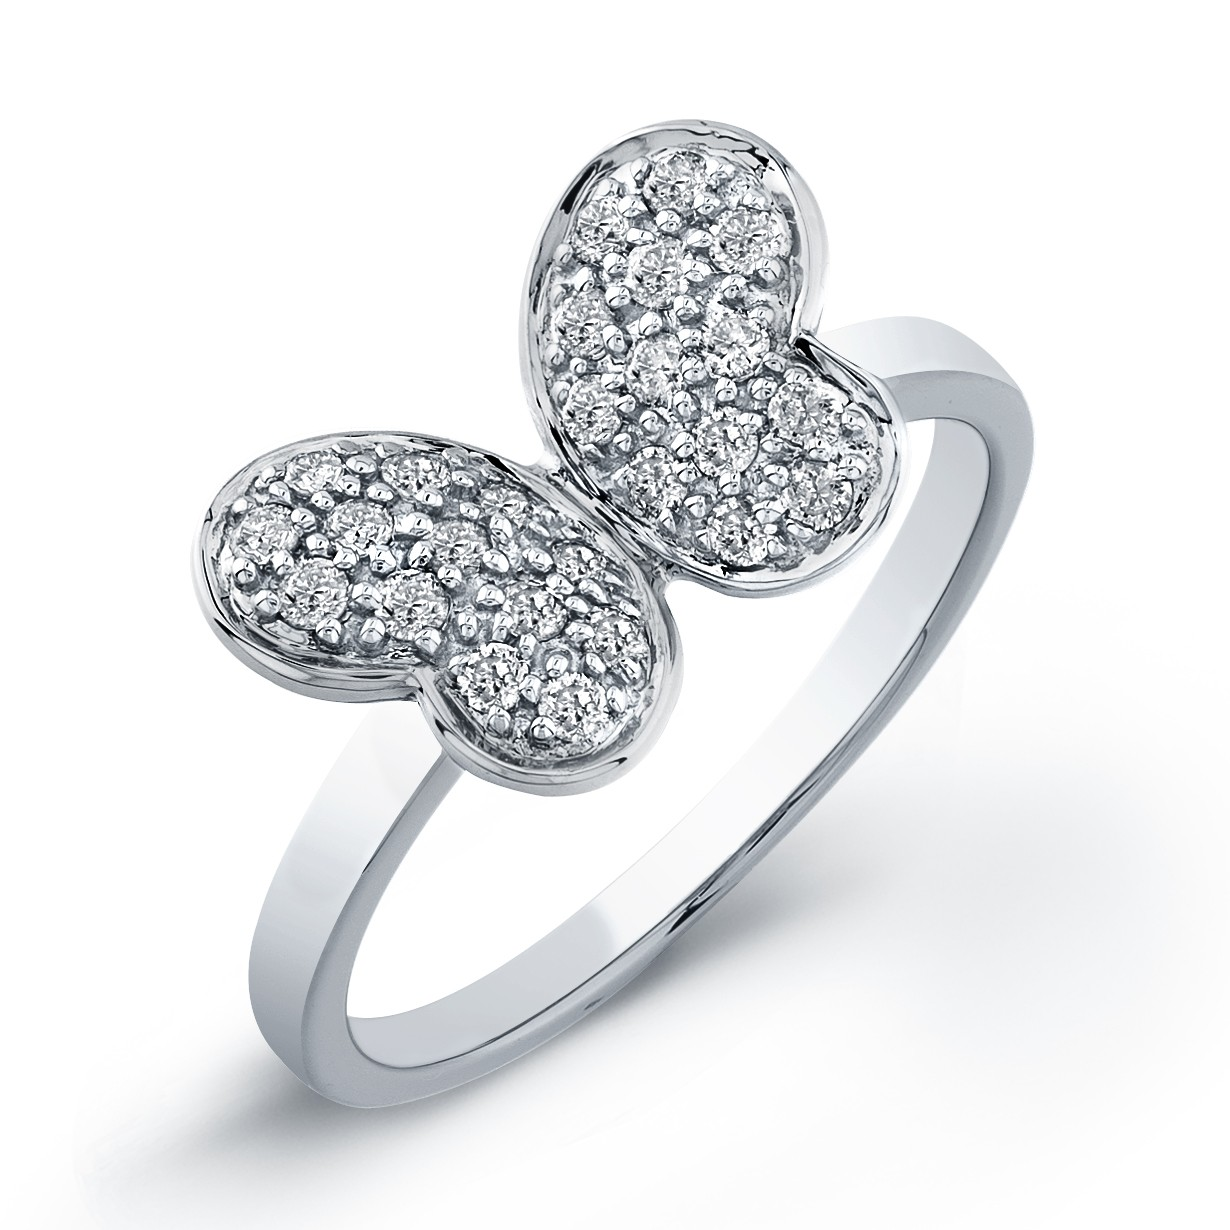 ring prices rings butterfly product at affordable diamond american